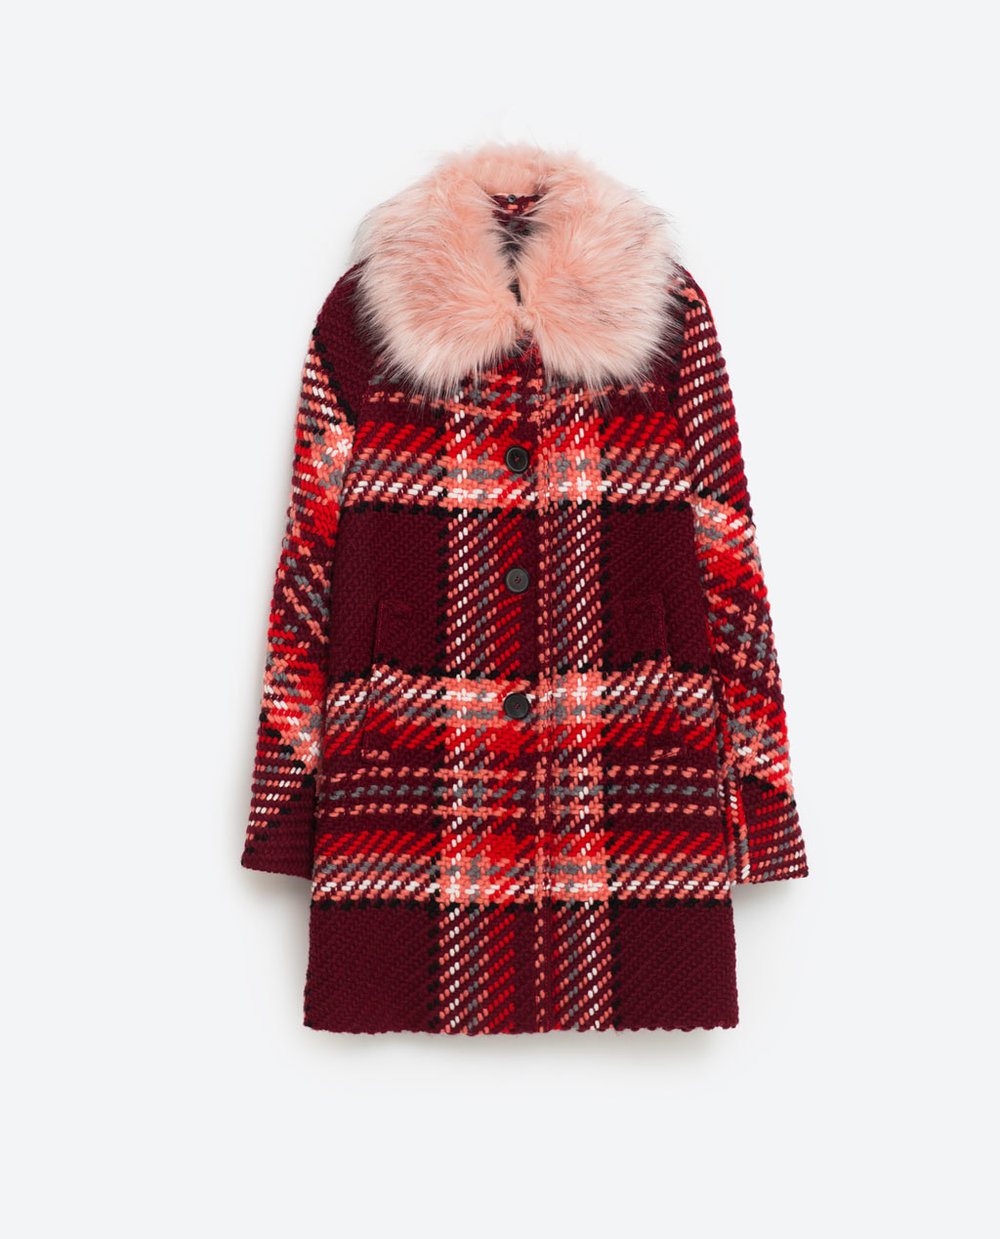 Zara Check Statement Coat